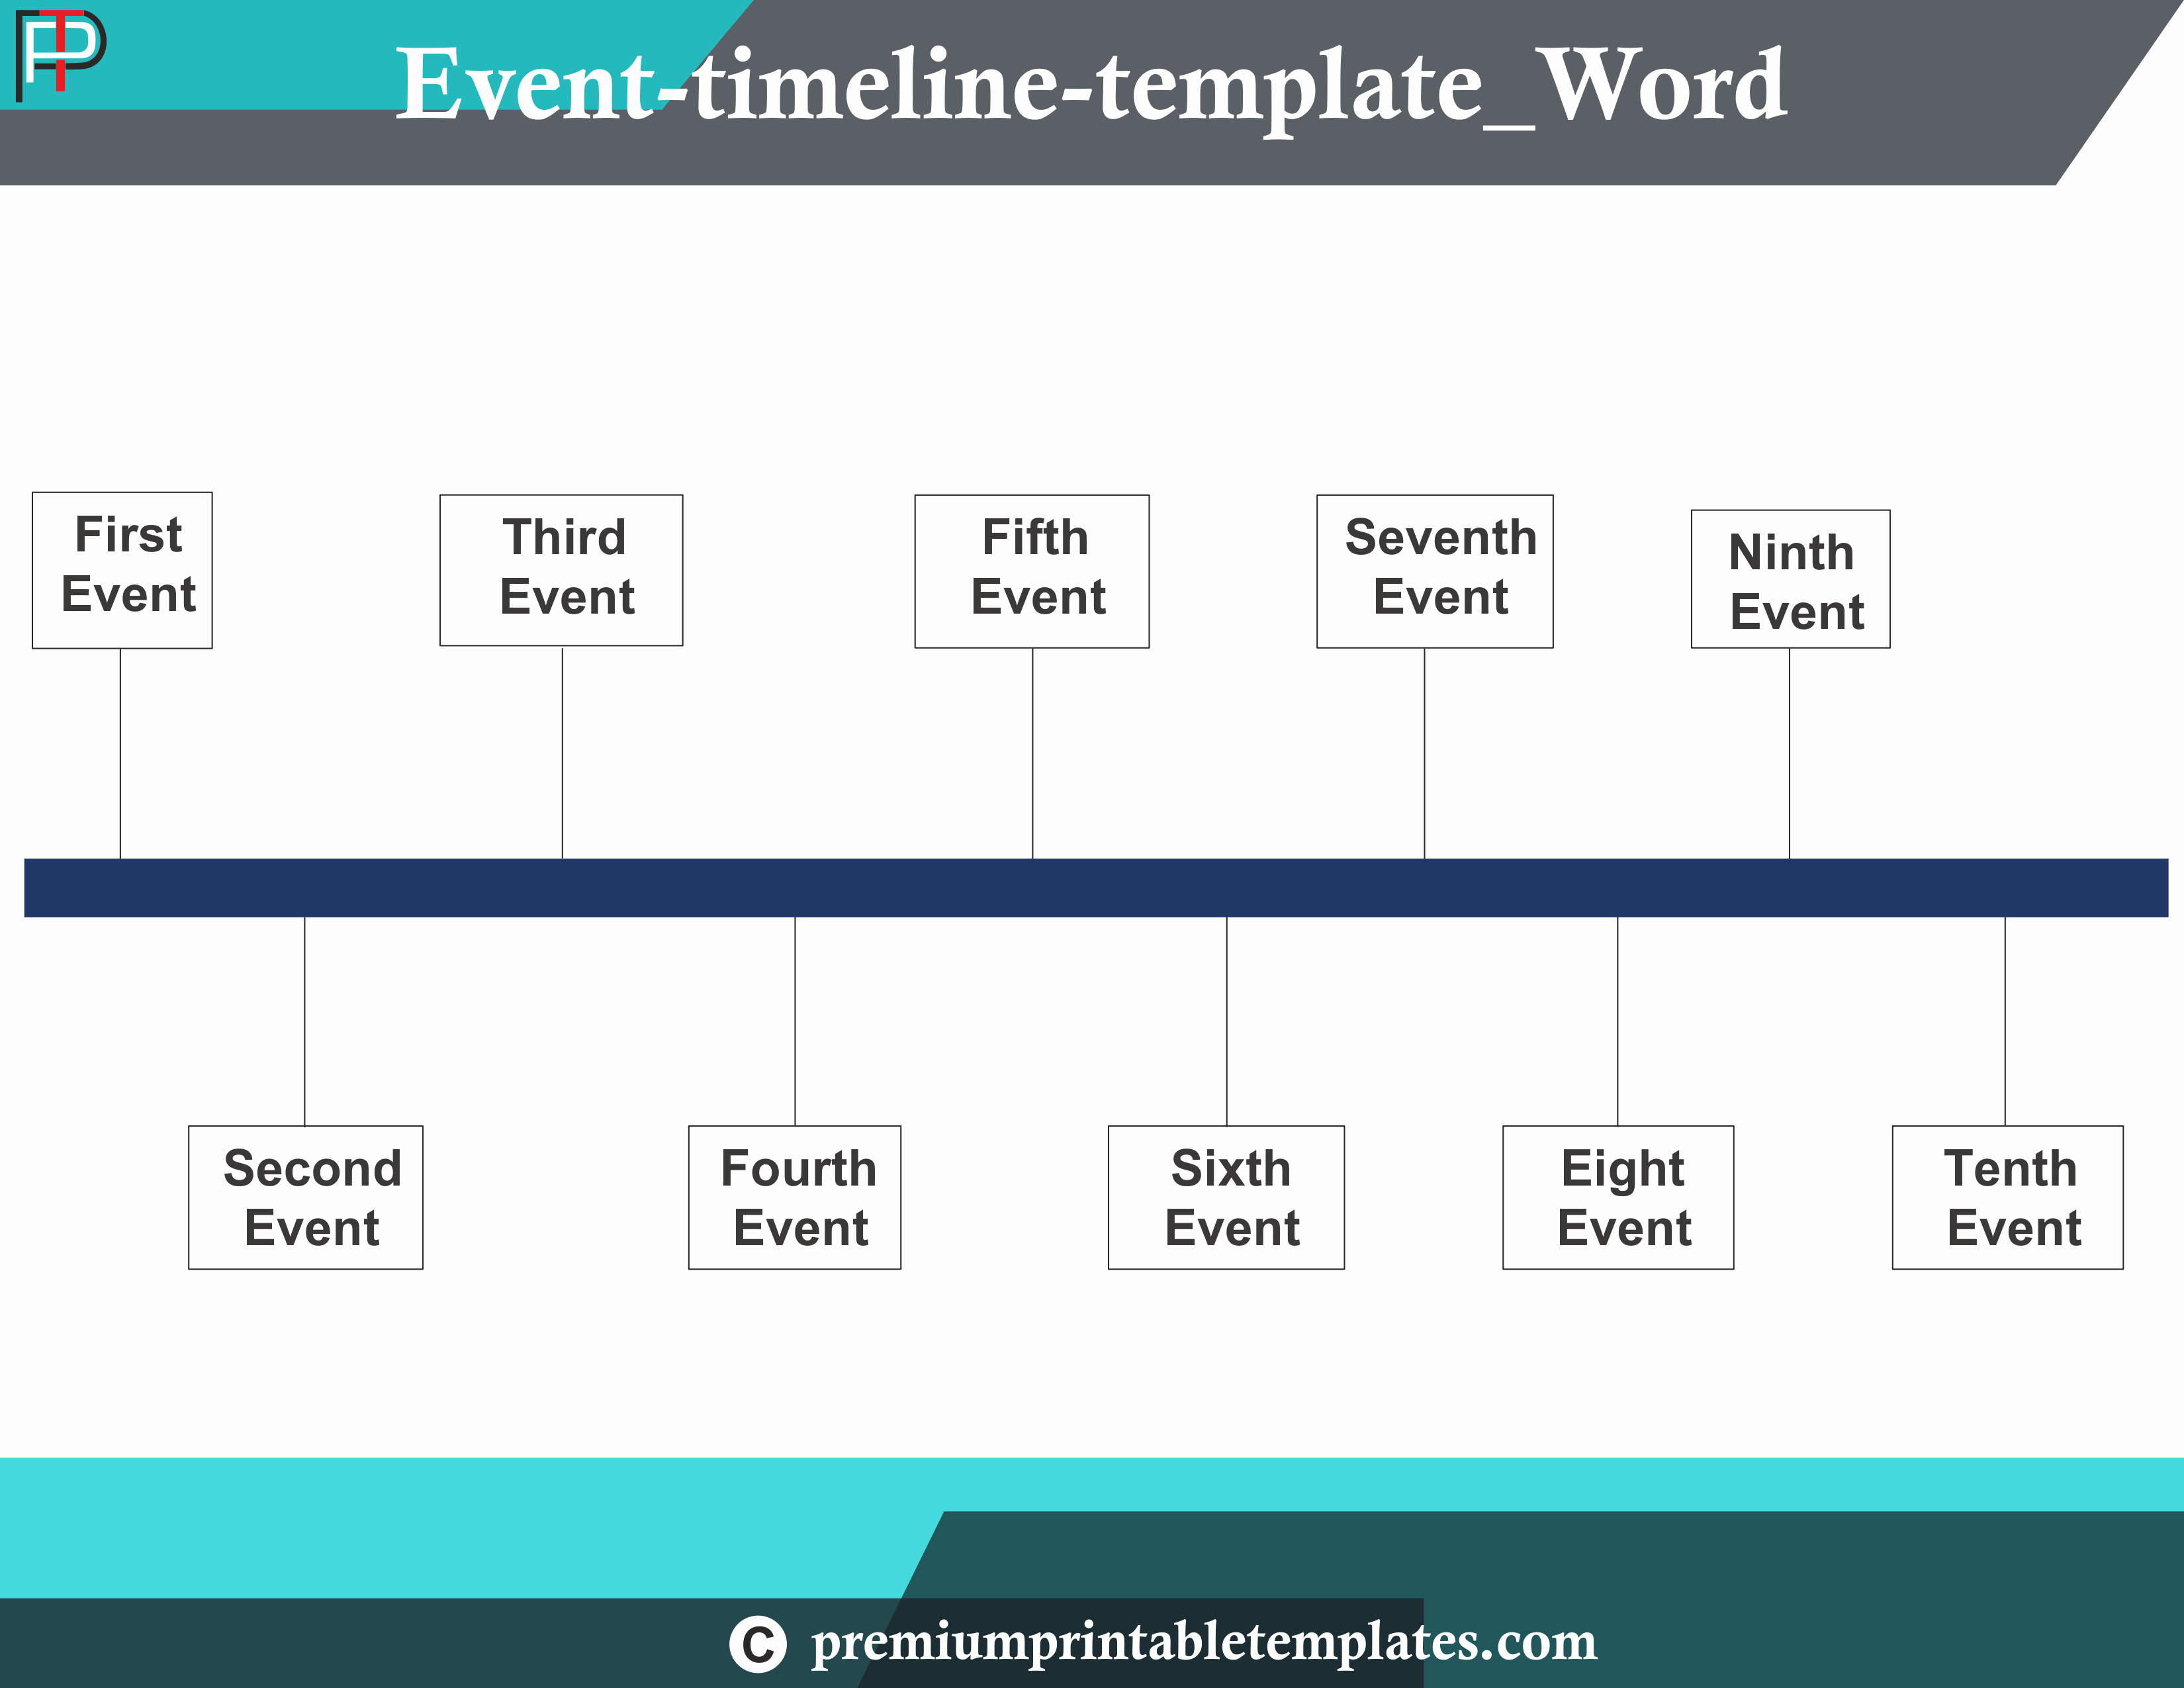 Timeline Of events Template Word Best Of event Timeline Template Word – Premium Printable Templates